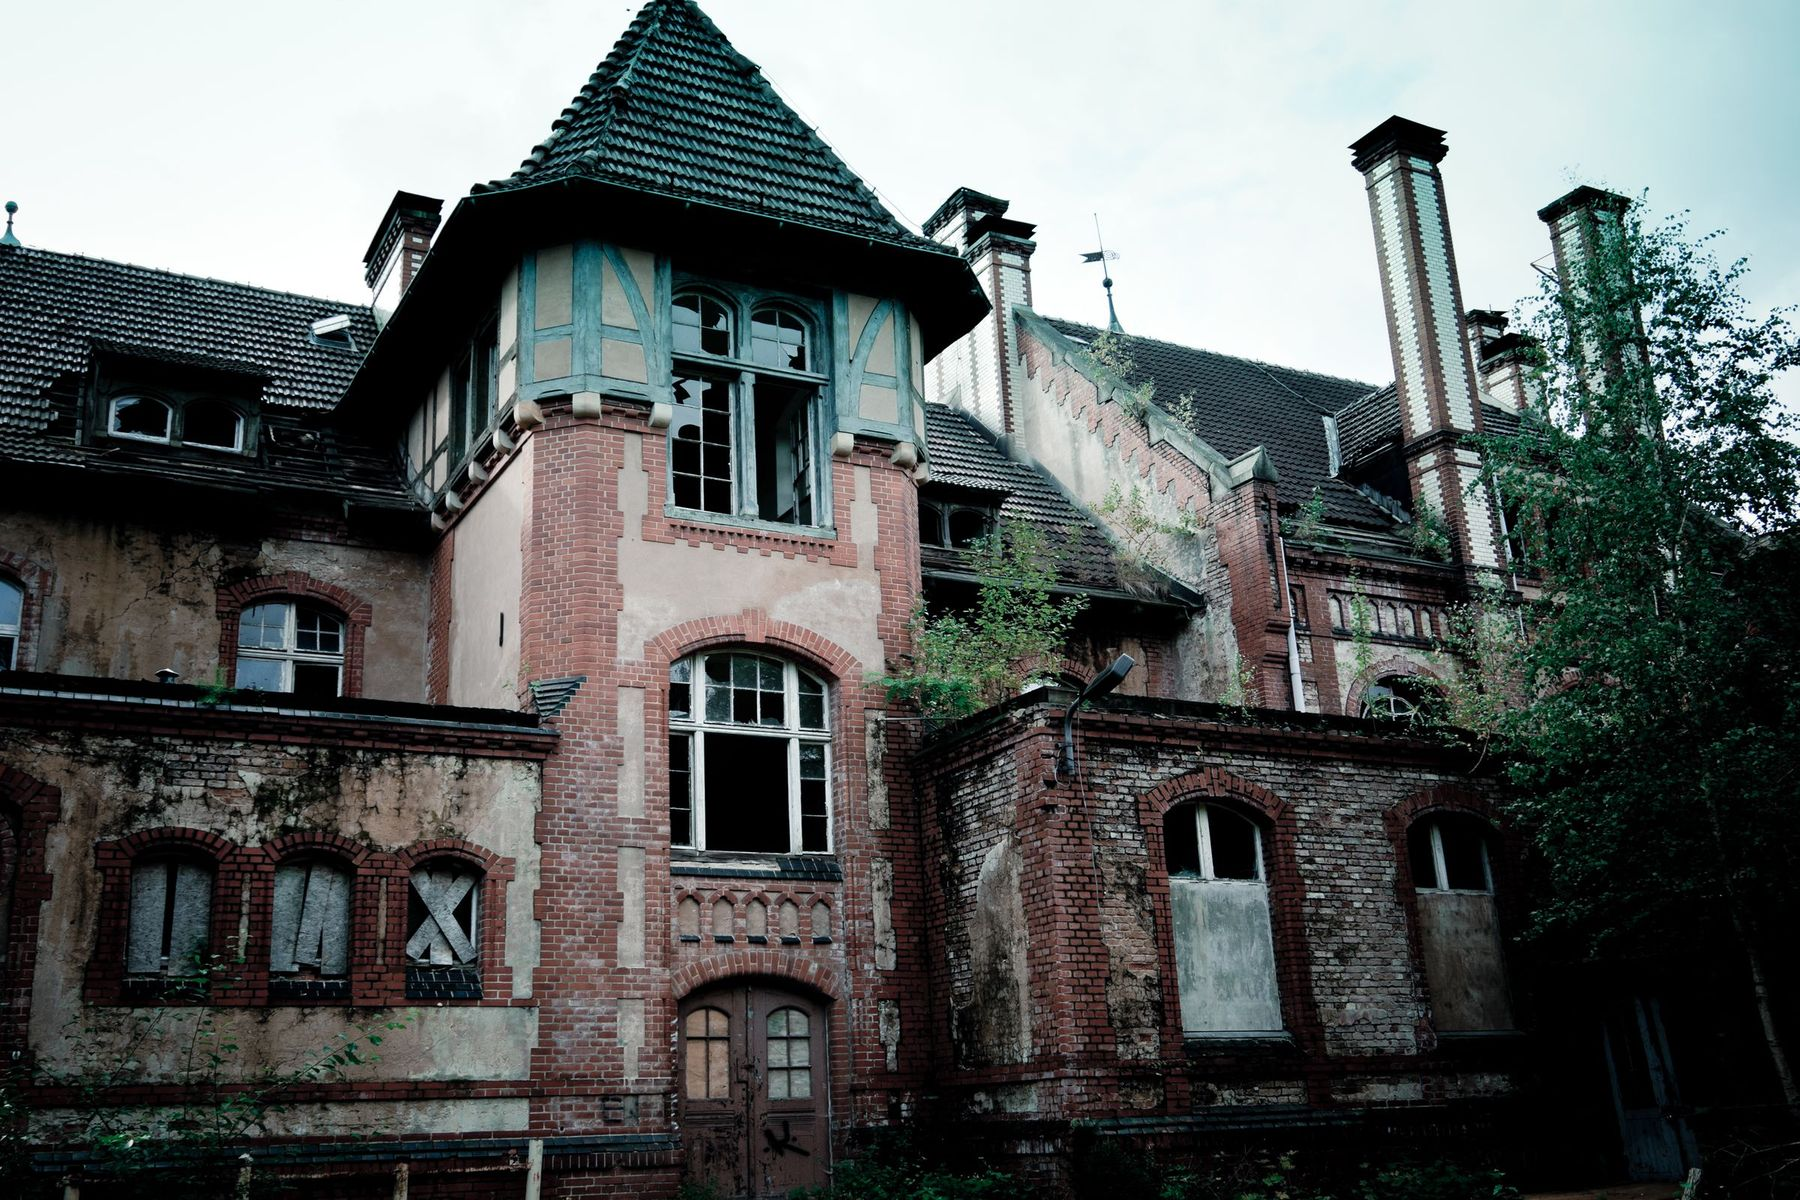 Spooky Abandoned Palace Building